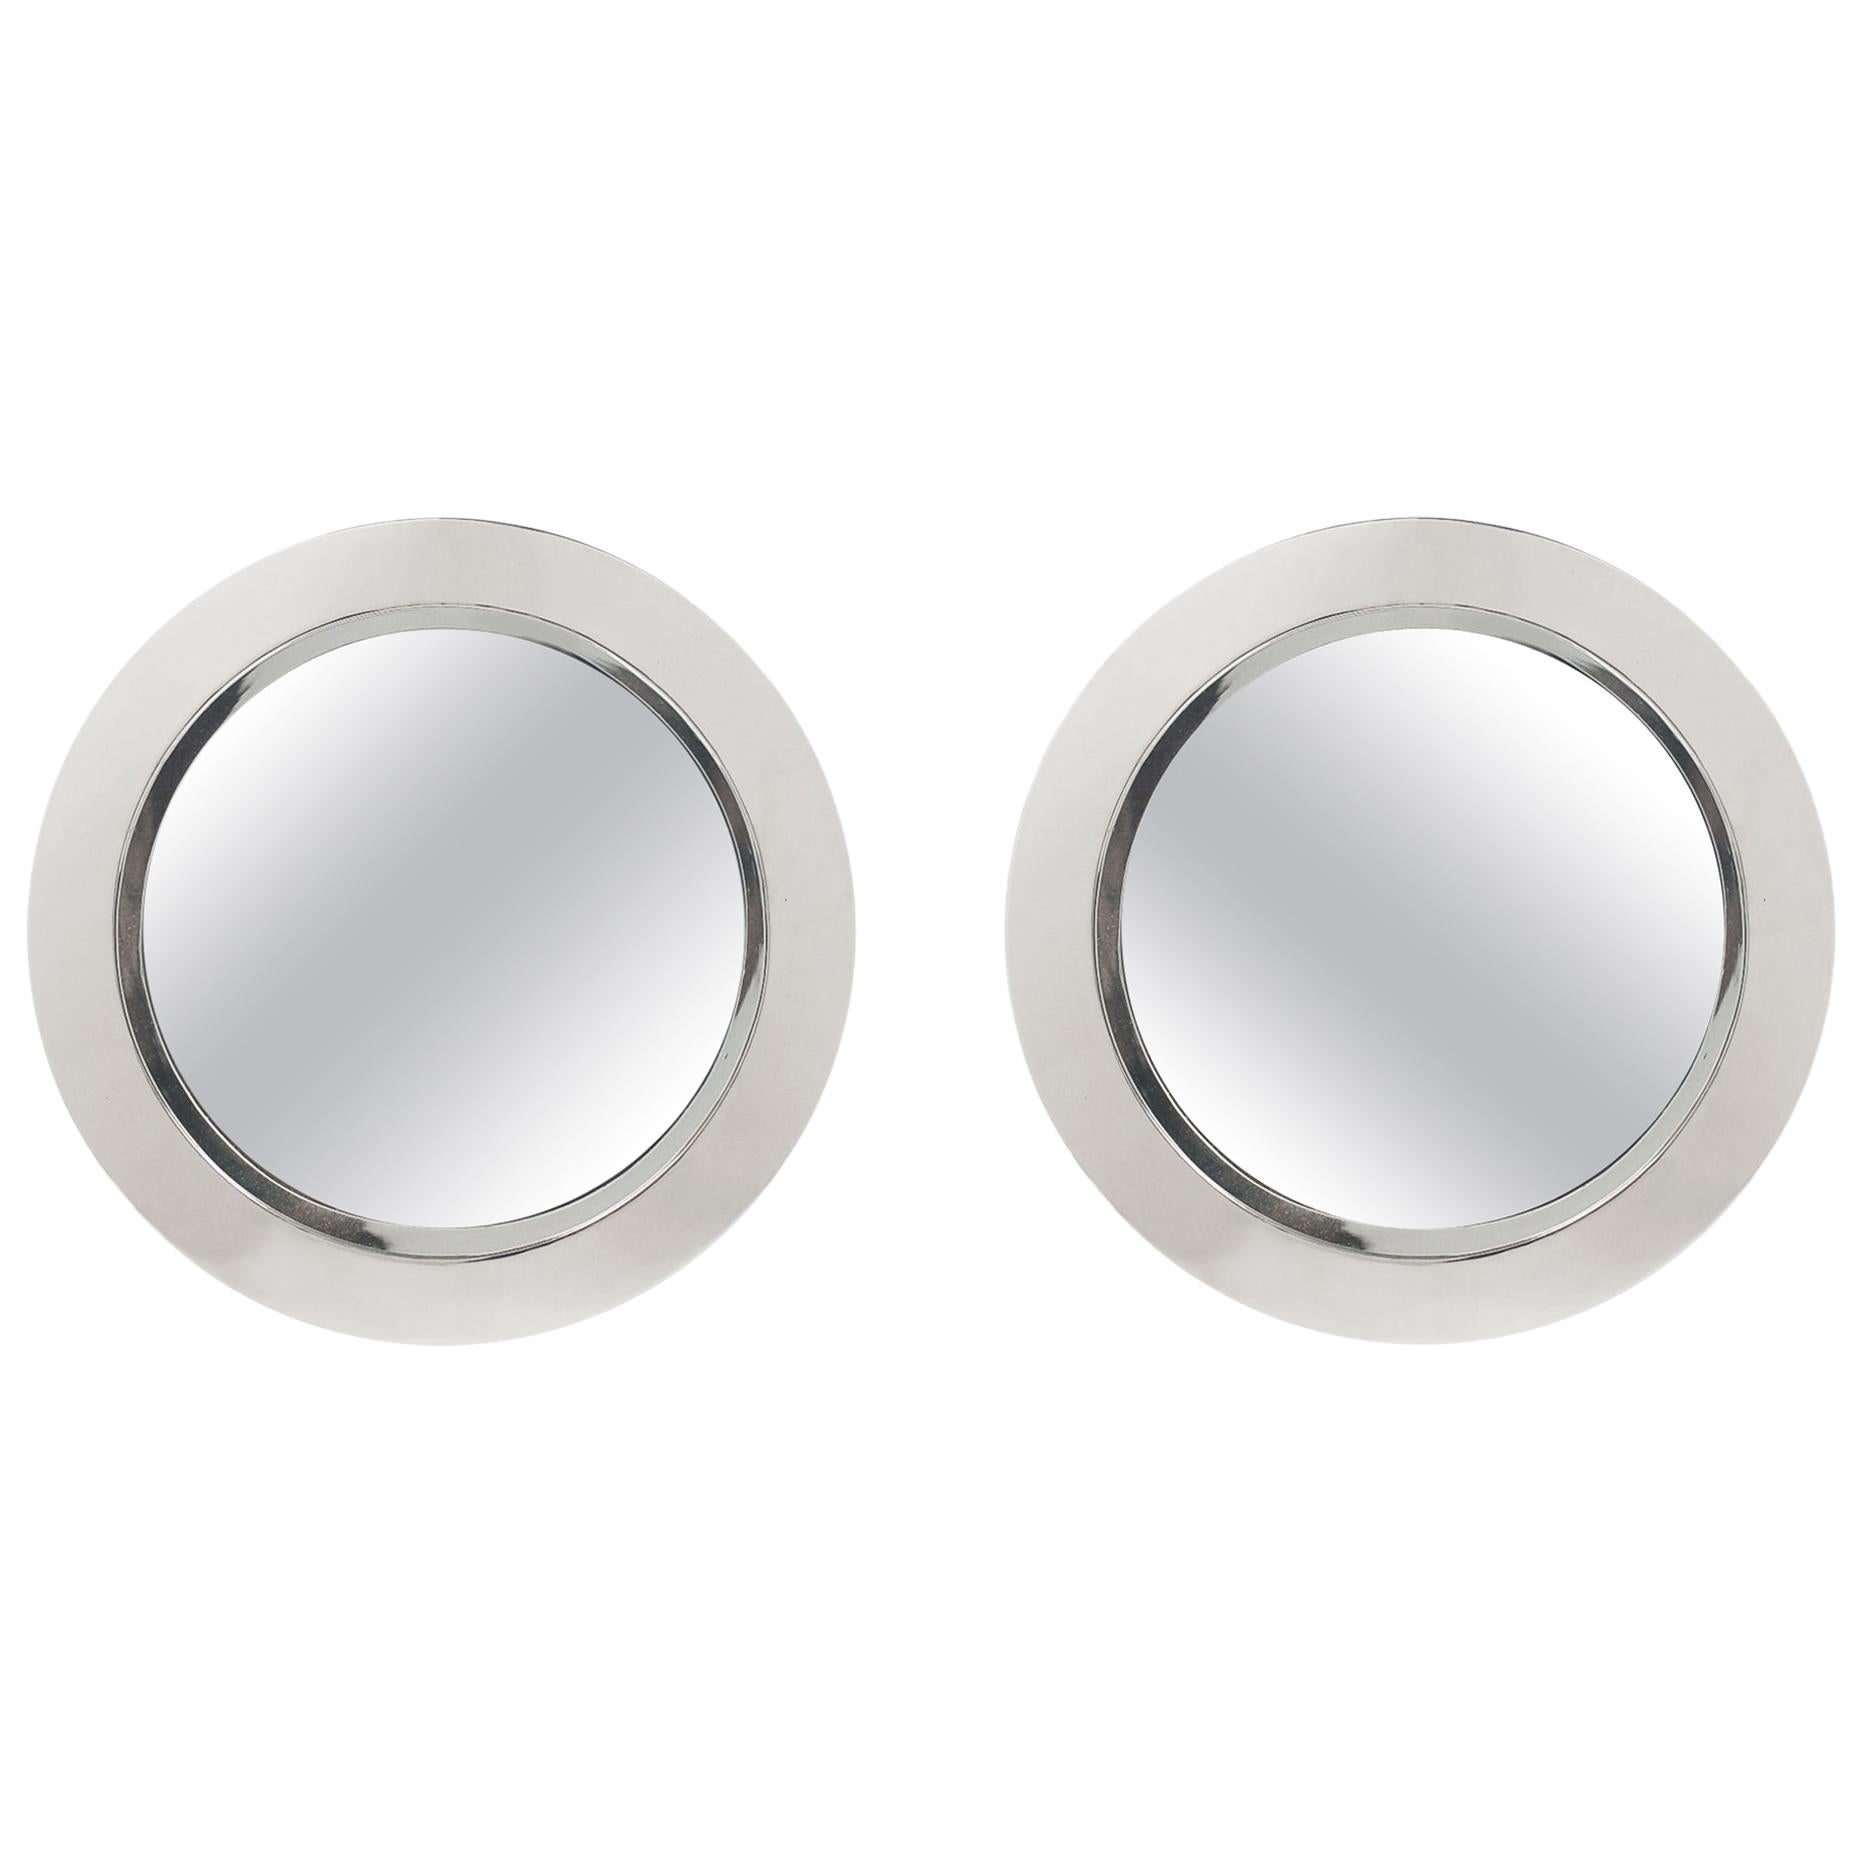 Pair of Mid-Century Modern Circular Porthole Wall Mirror in Chrome, Curtis Jere